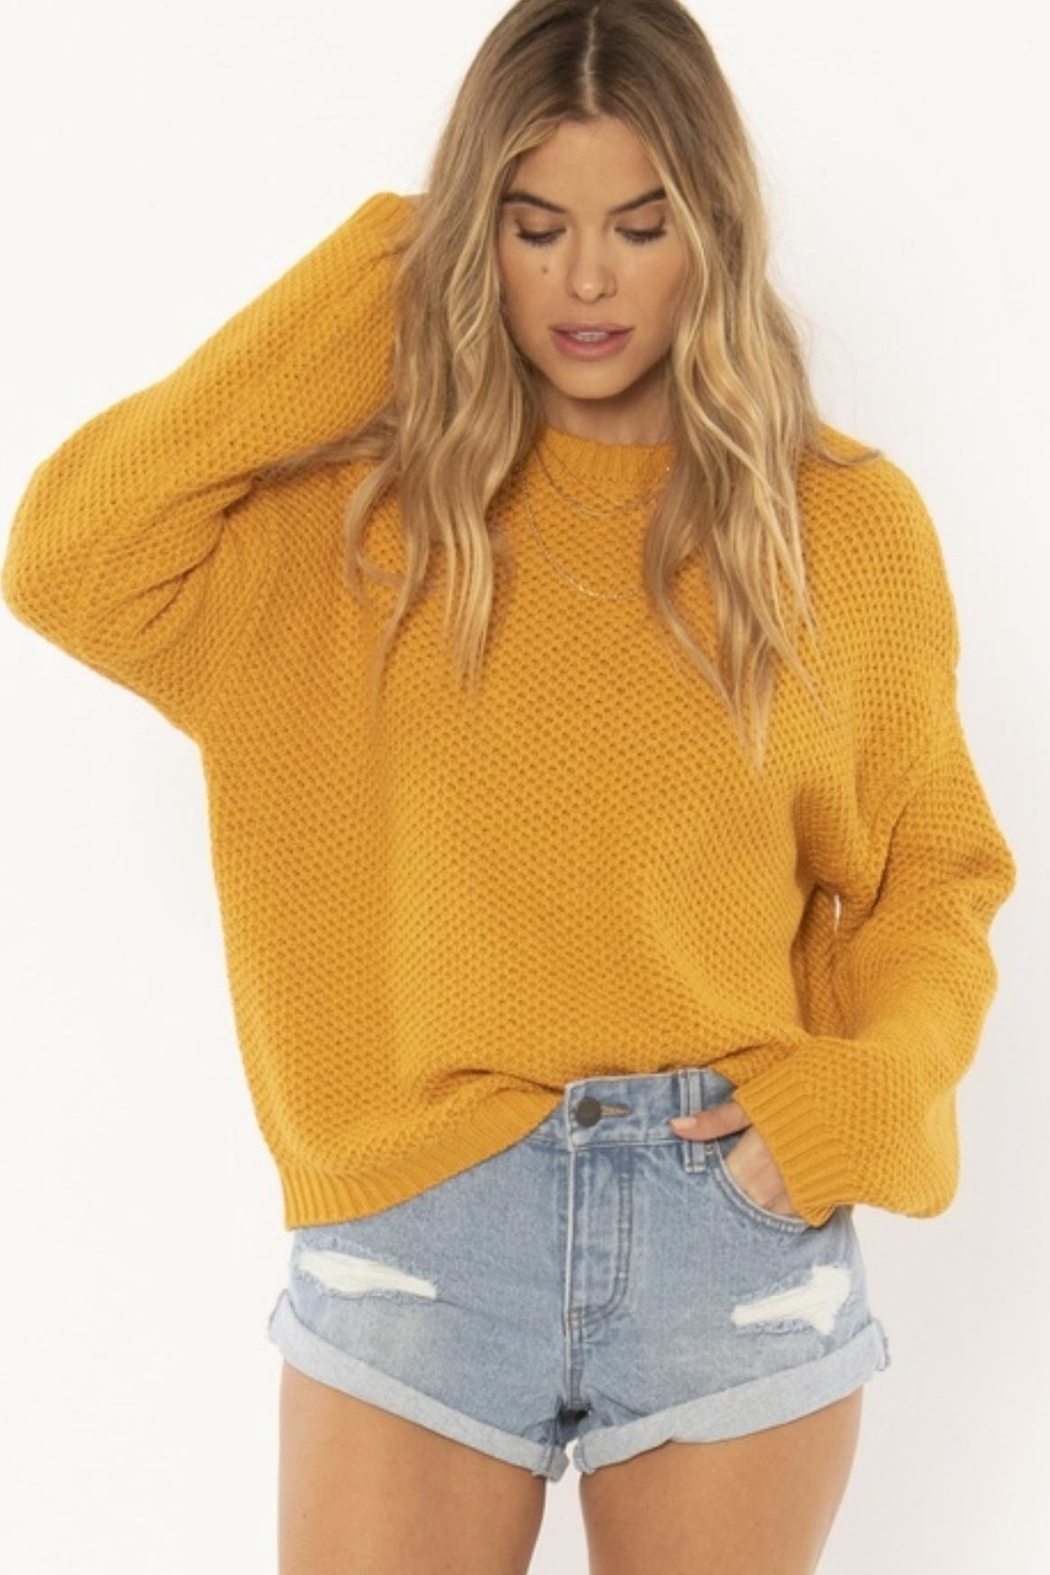 AMUSE SOCIETY Mustard Knit Sweater - Main Image